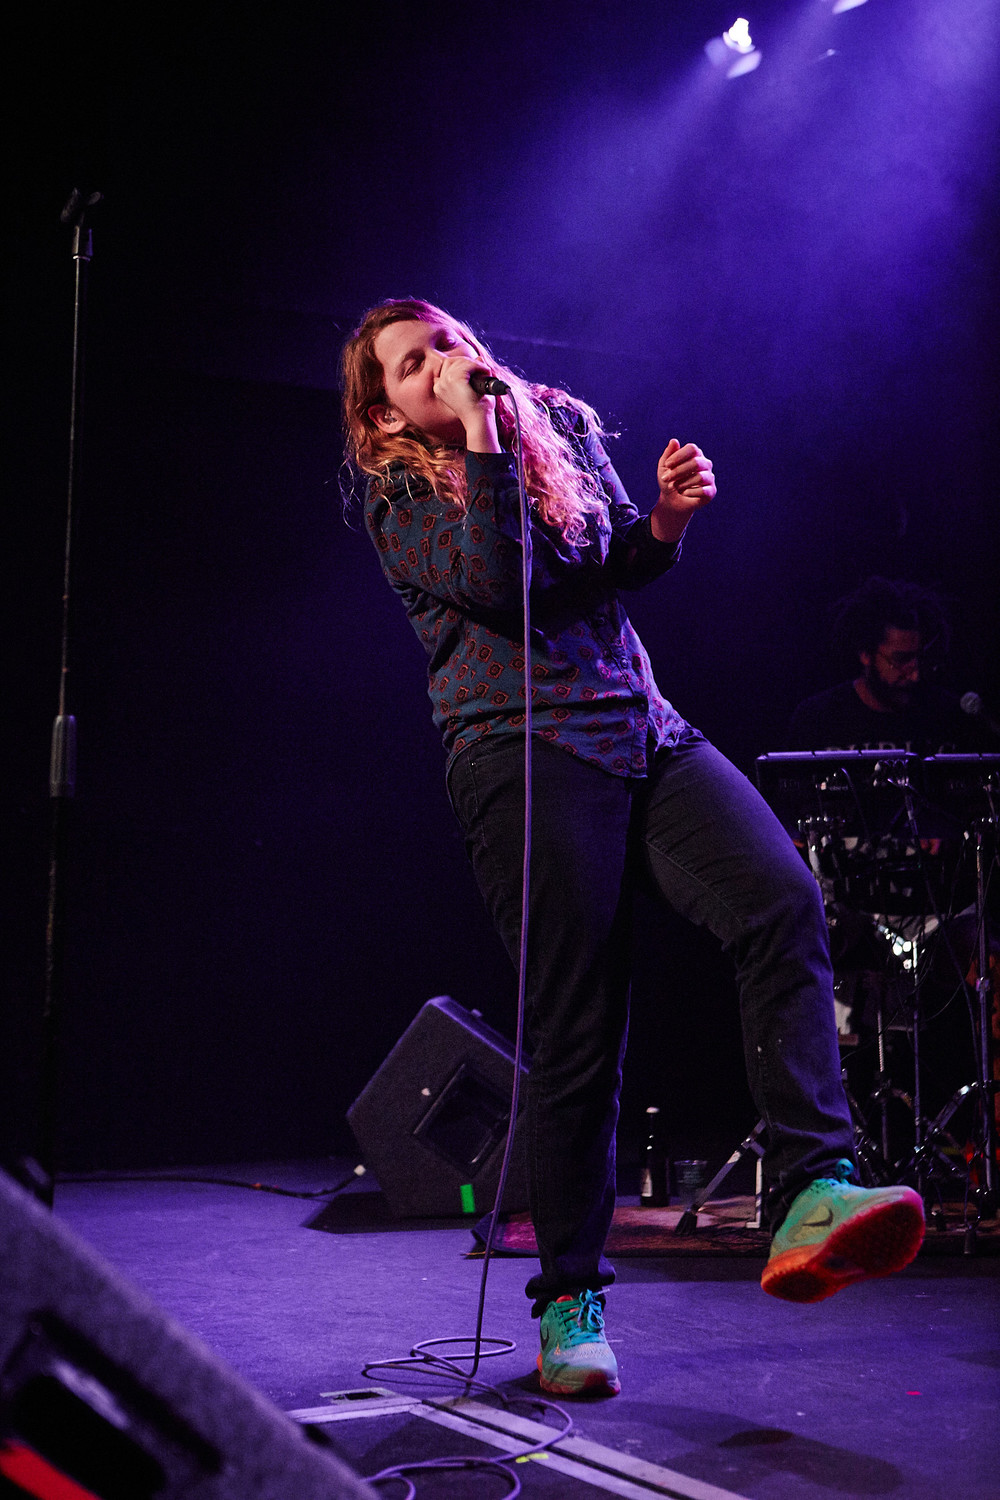 2015_02_17_Kate_Tempest_Nottingham 6.jpg